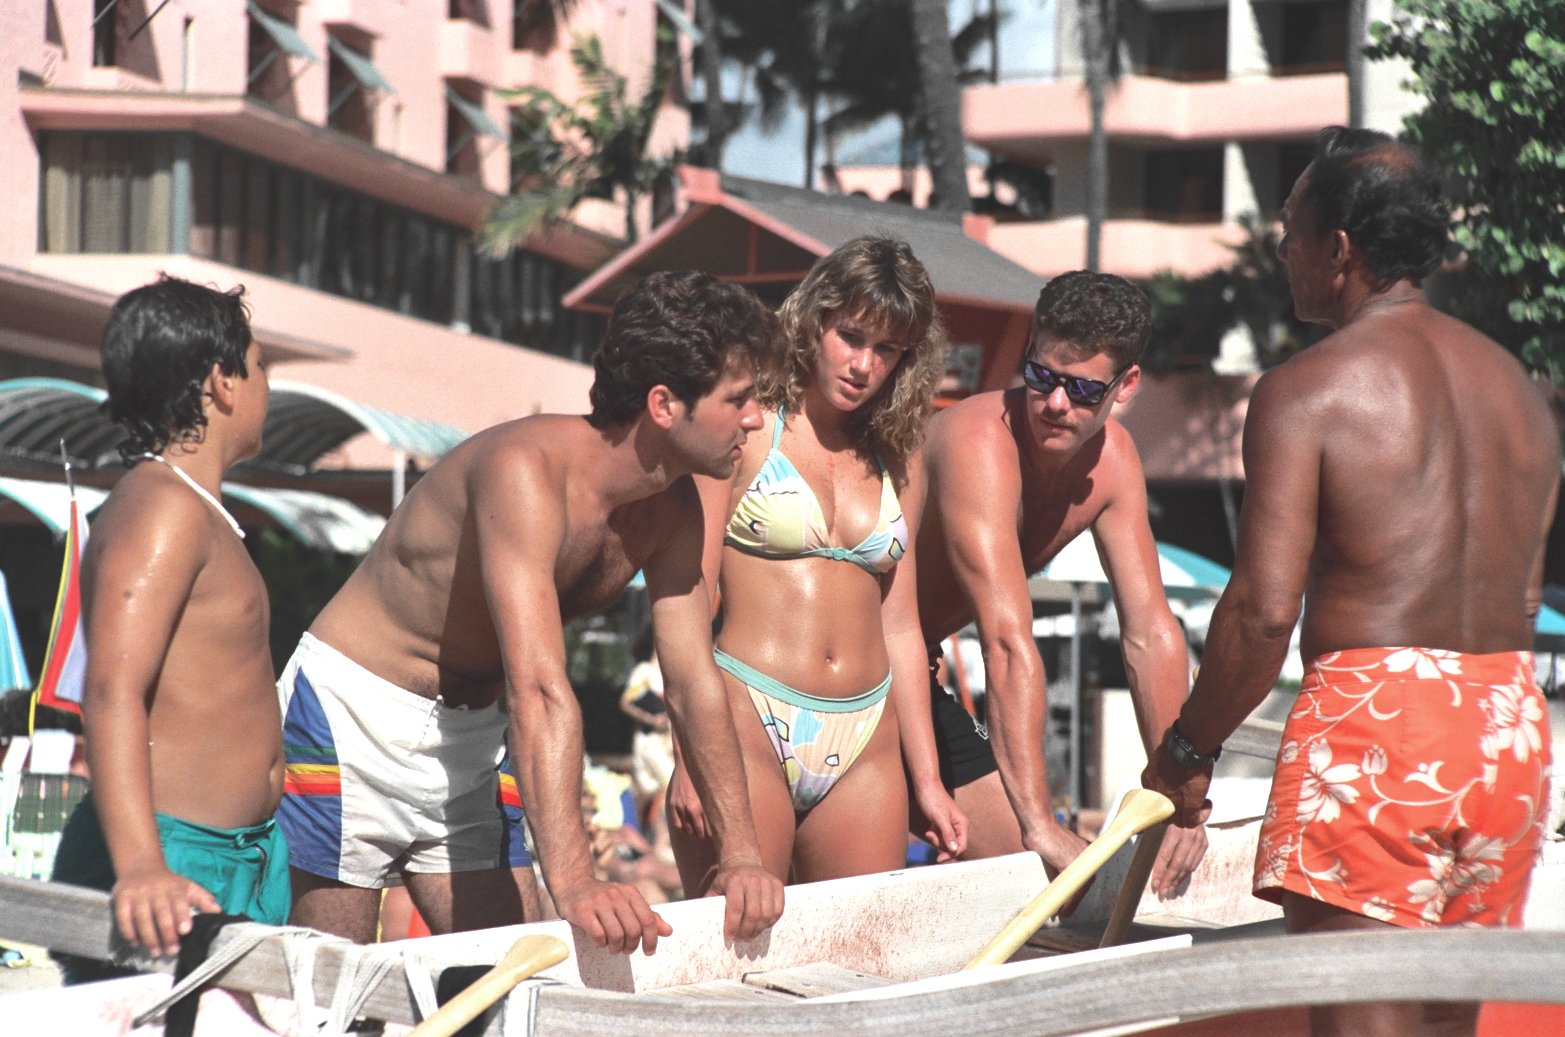 File:At Waikiki Beach, 1988.jpg